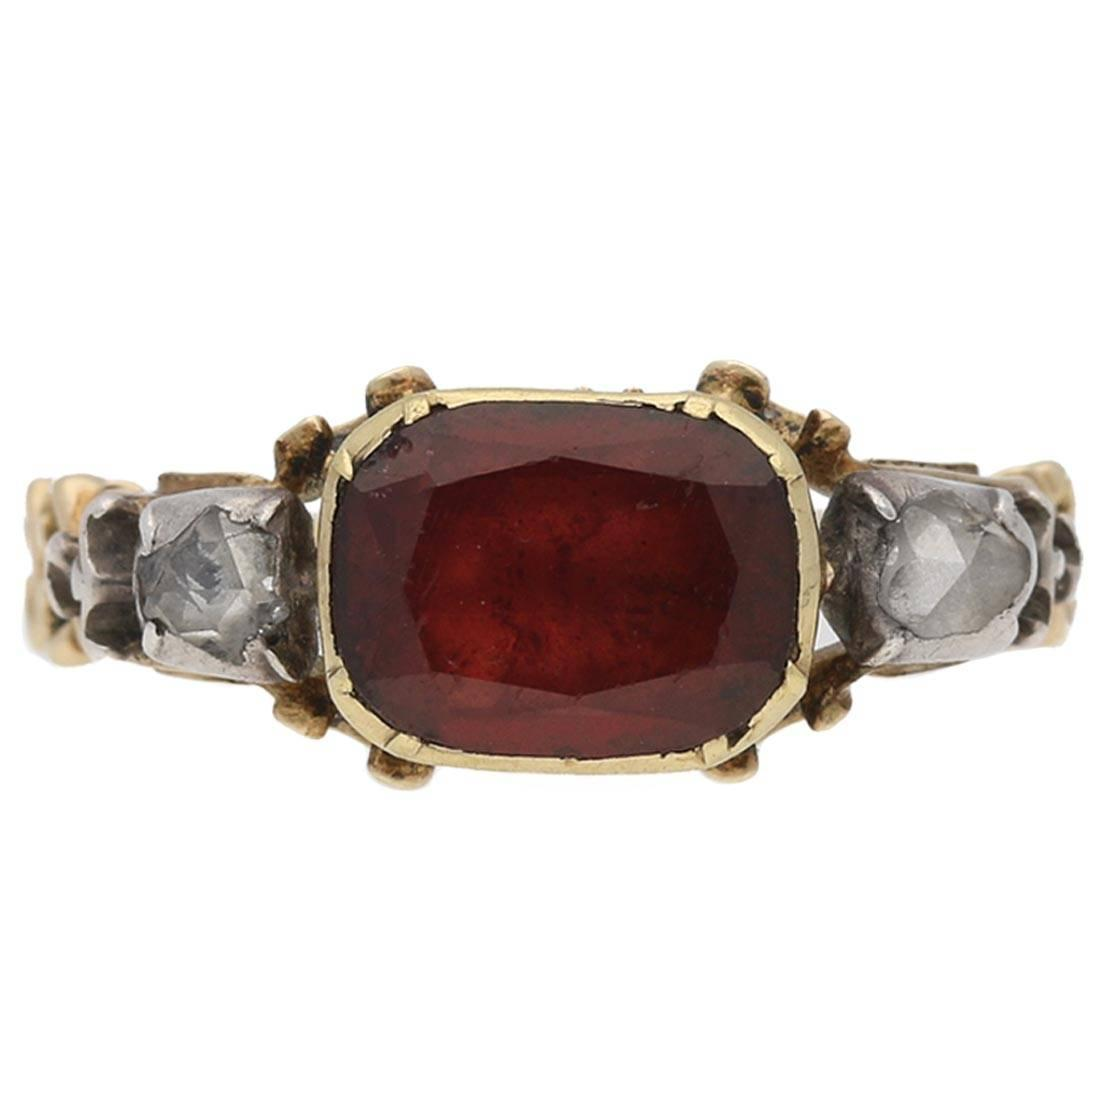 collections stones oval cushion side featuring an pear ruby ring classic a cut rings diamond with maroon graff shape rudy